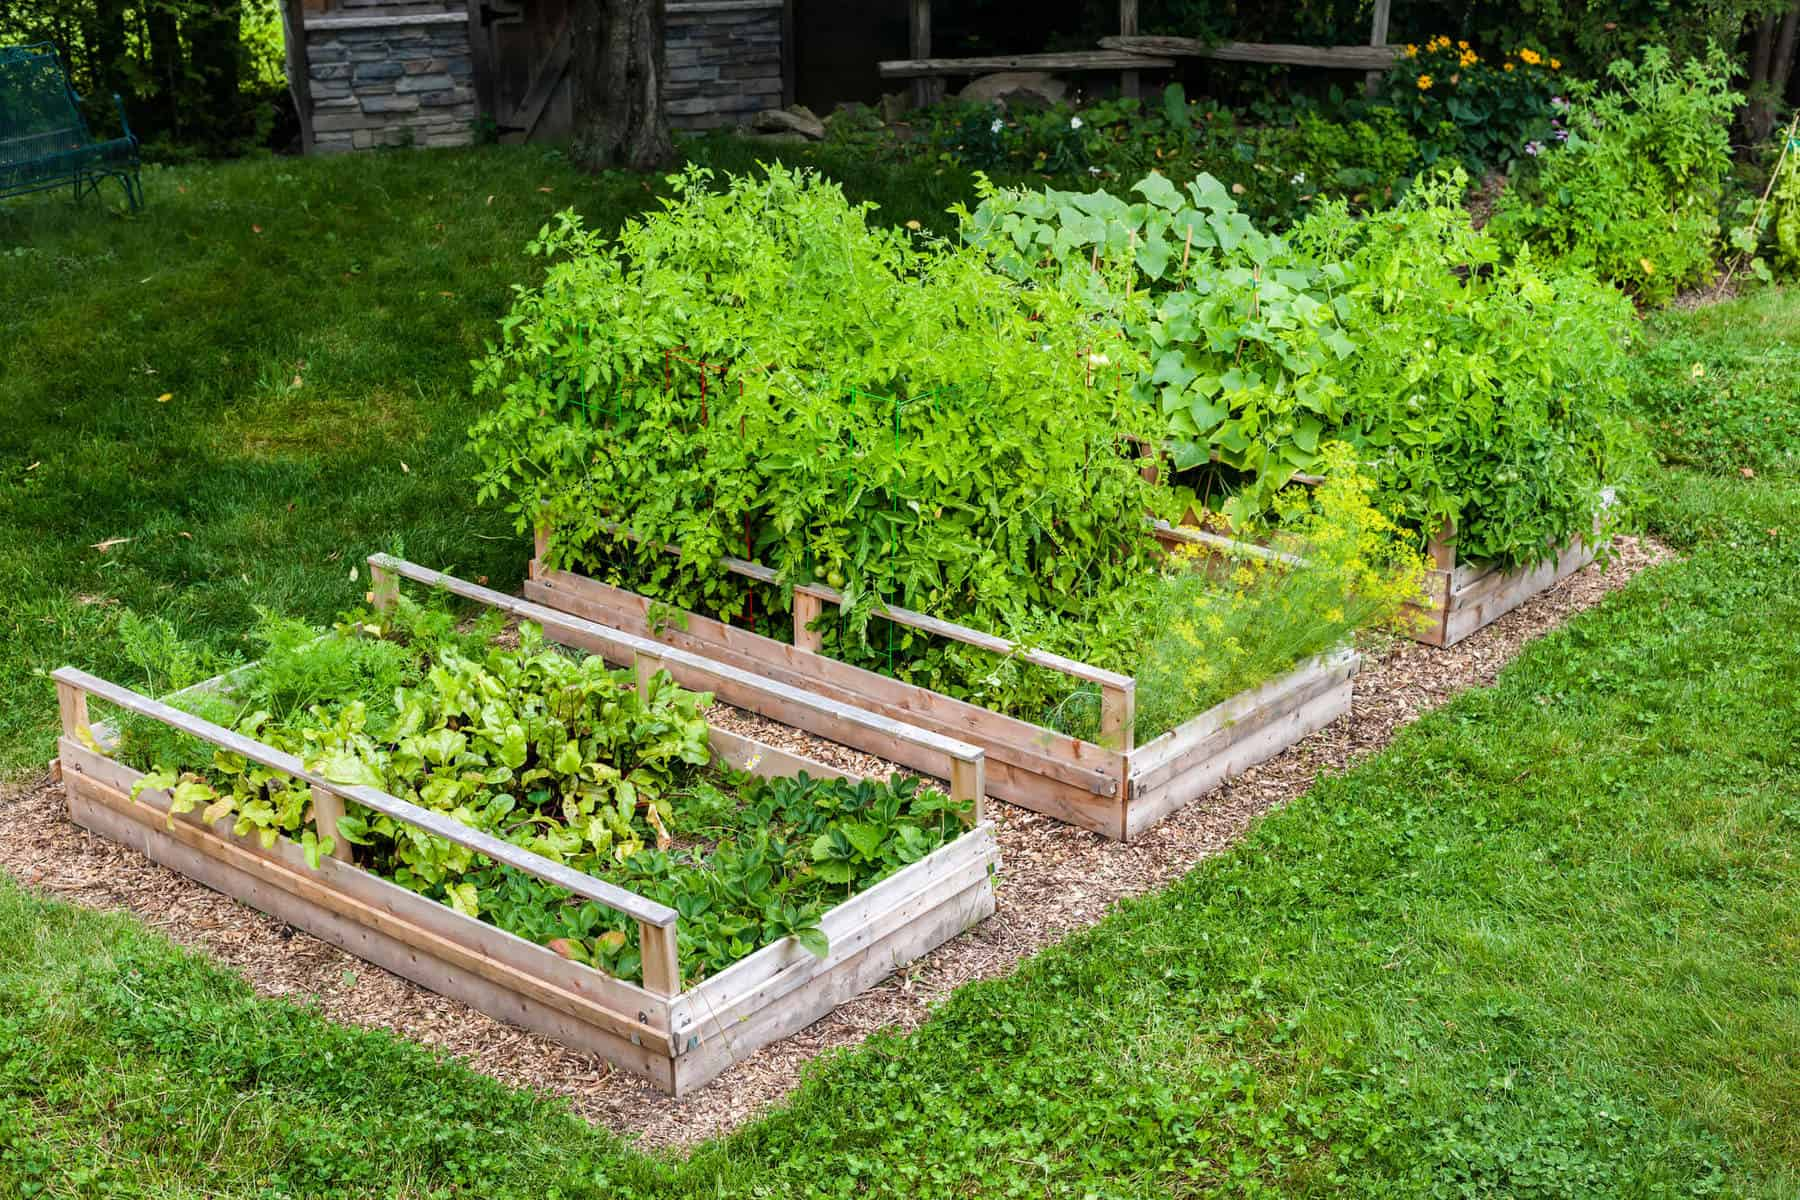 31 Ways to Make You an Organic Gardening Guru